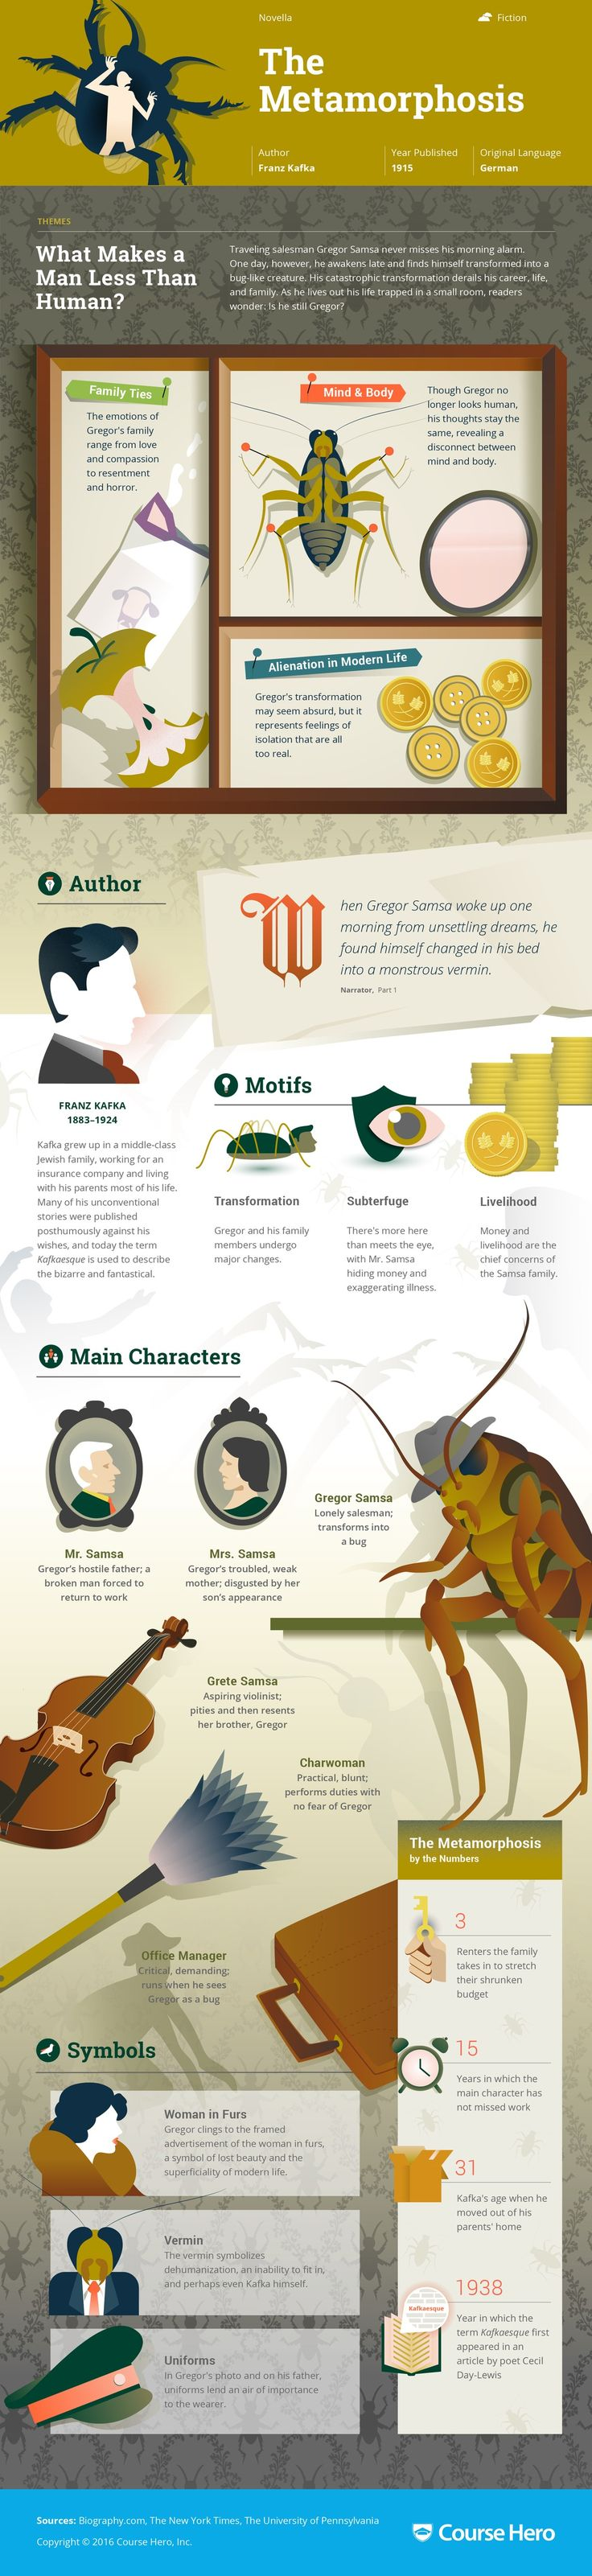 best ideas about the metamorphosis franz kafka study guide for franz kafka s the metamorphosis including part summary character analysis and more learn all about the metamorphosis ask questions